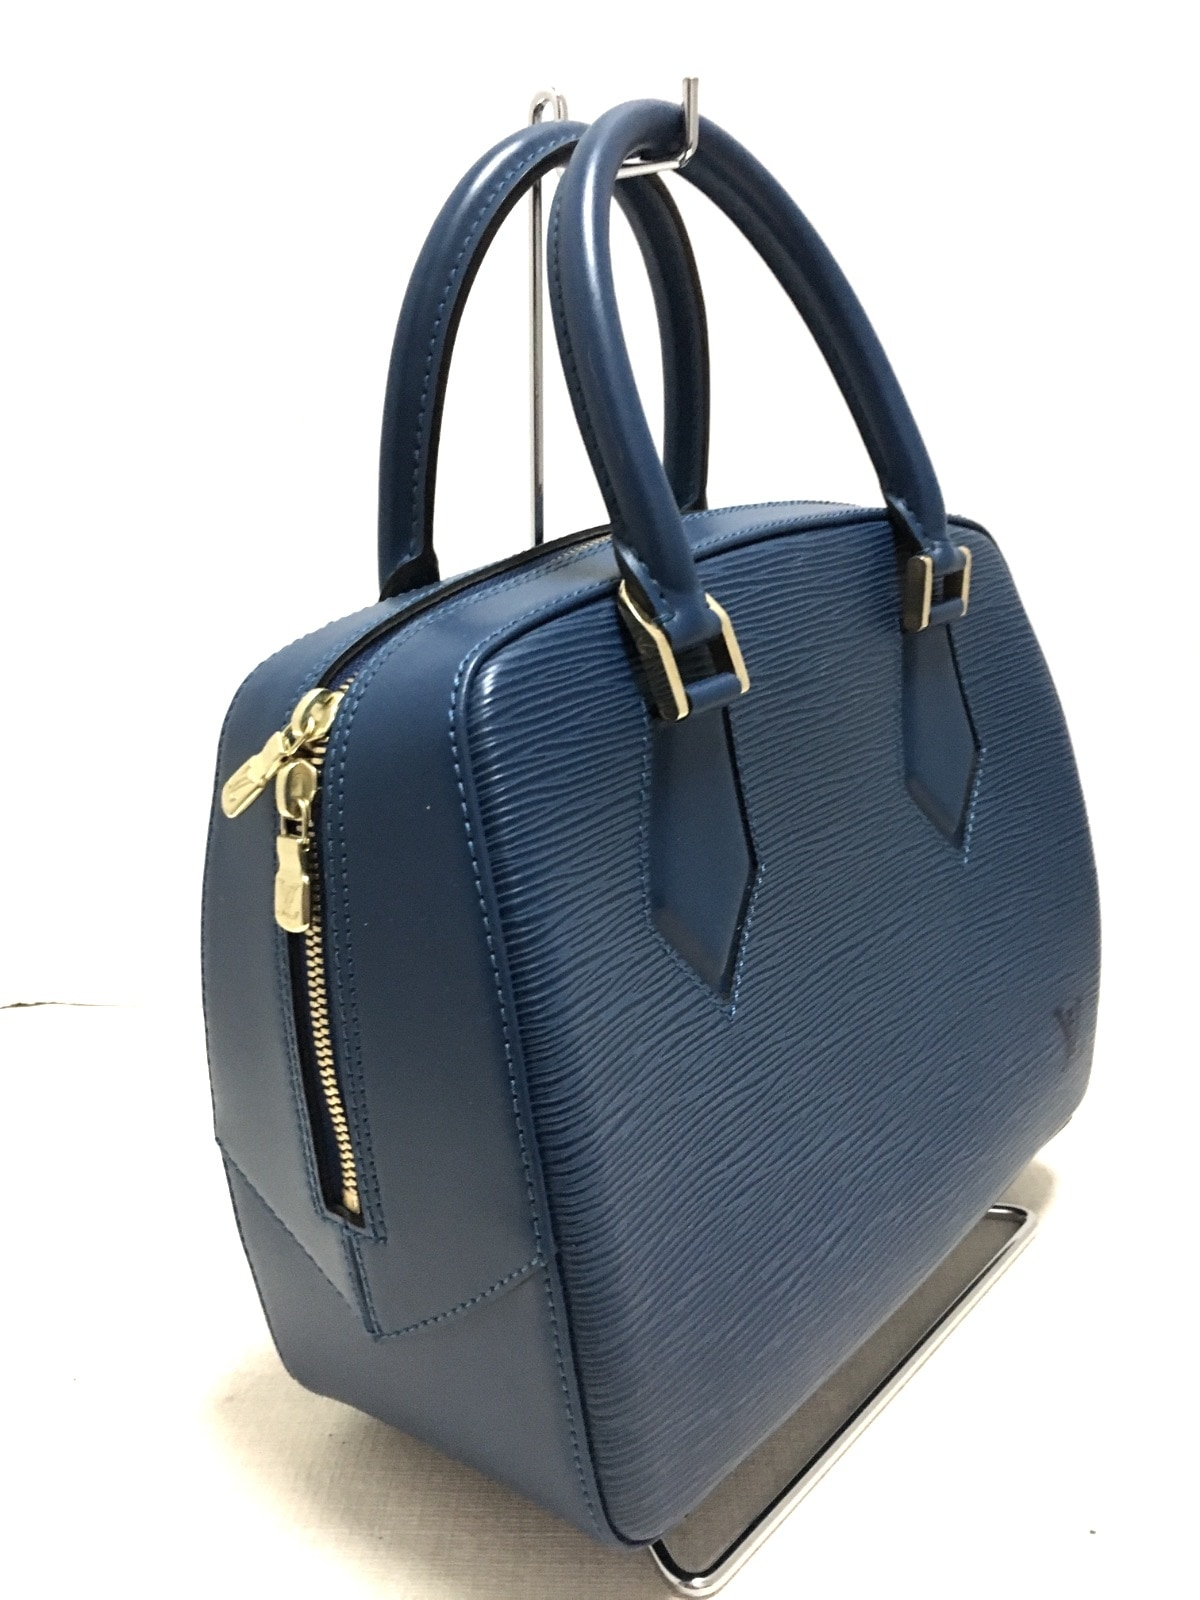 LOUIS VUITTON(ルイヴィトン)のサブロン